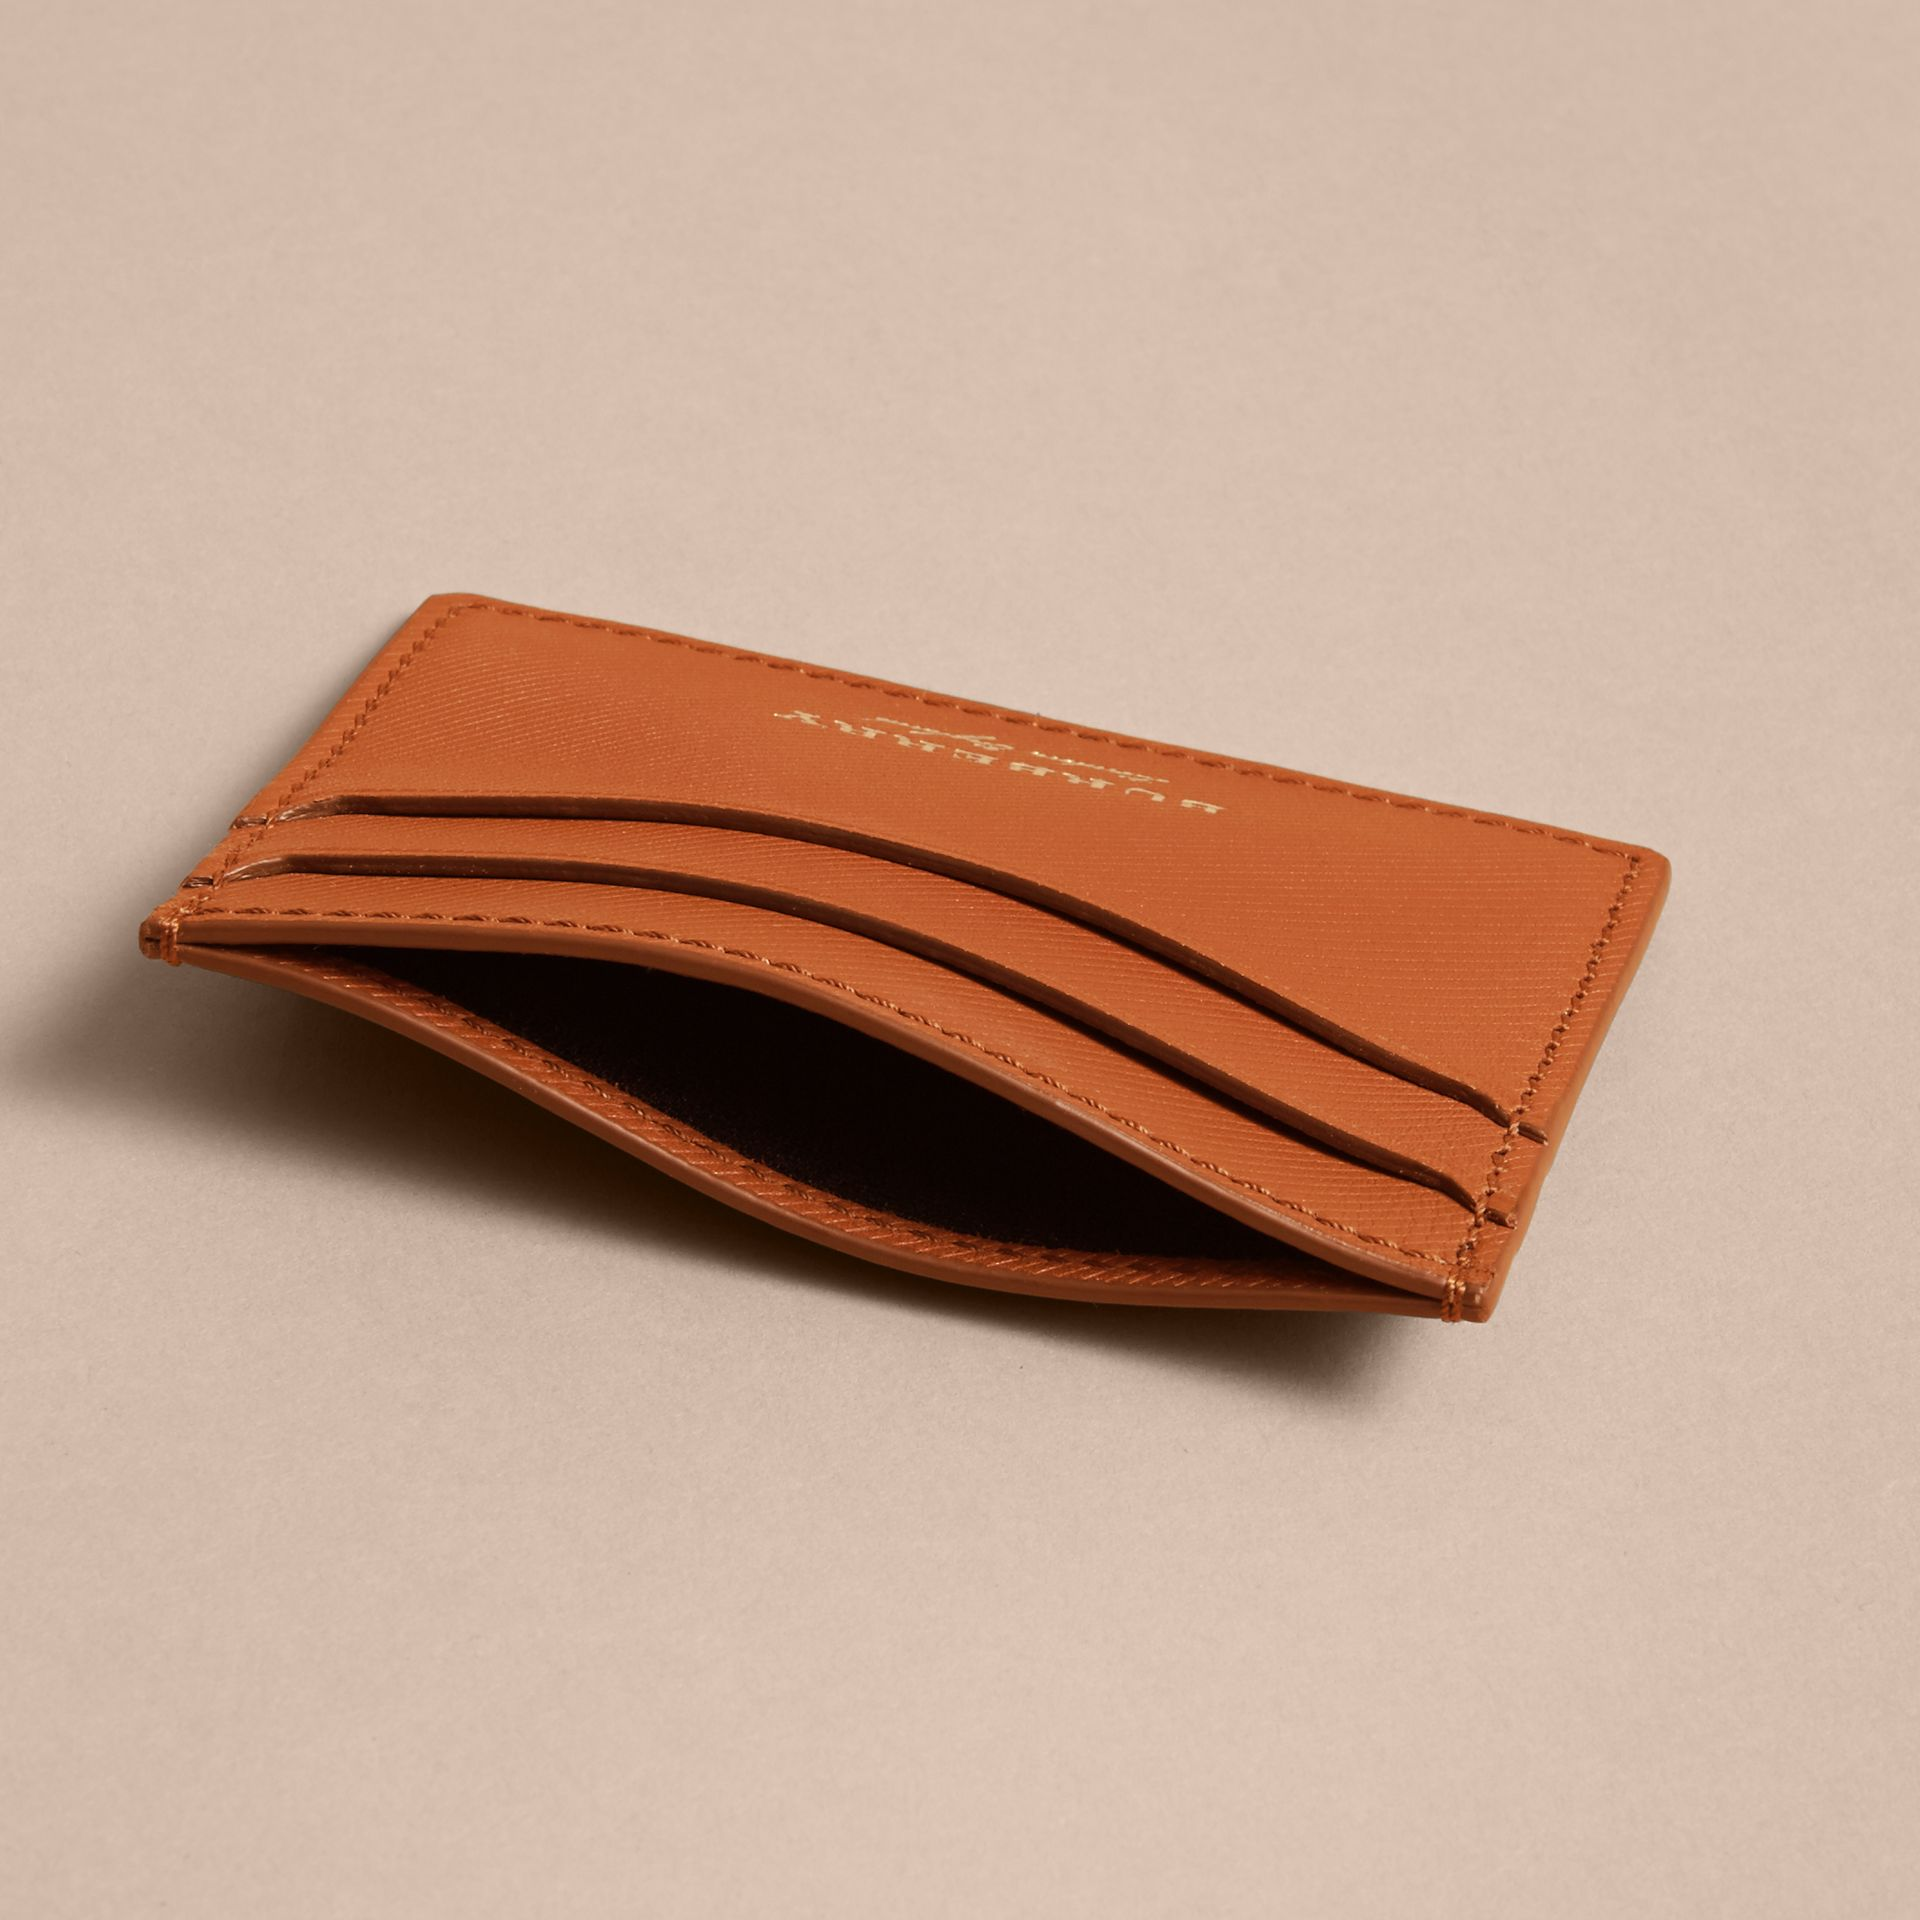 Trench Leather Card Case in Tan - Men | Burberry Canada - gallery image 4